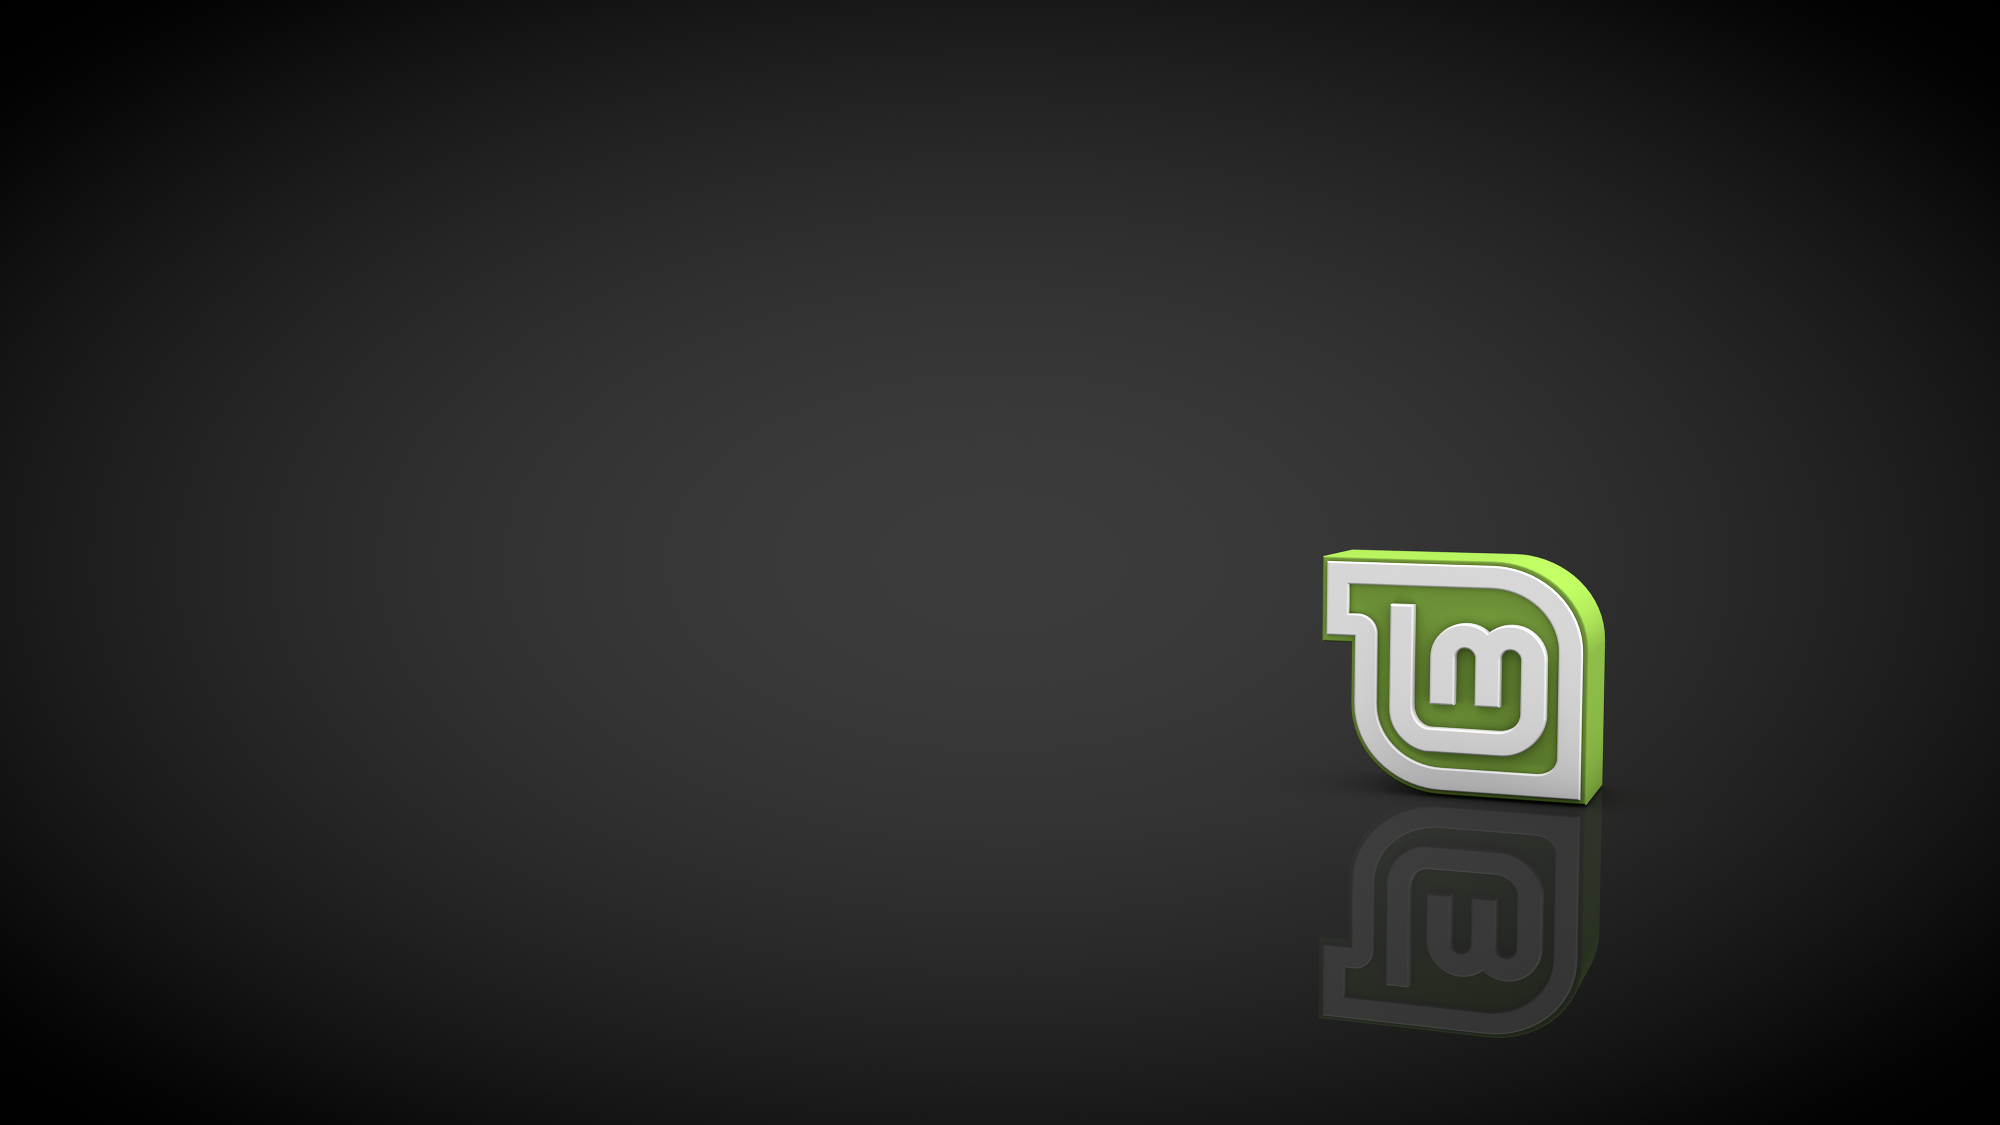 Linux mint clipart clipart library stock Live clipart linux mint - ClipartFox clipart library stock